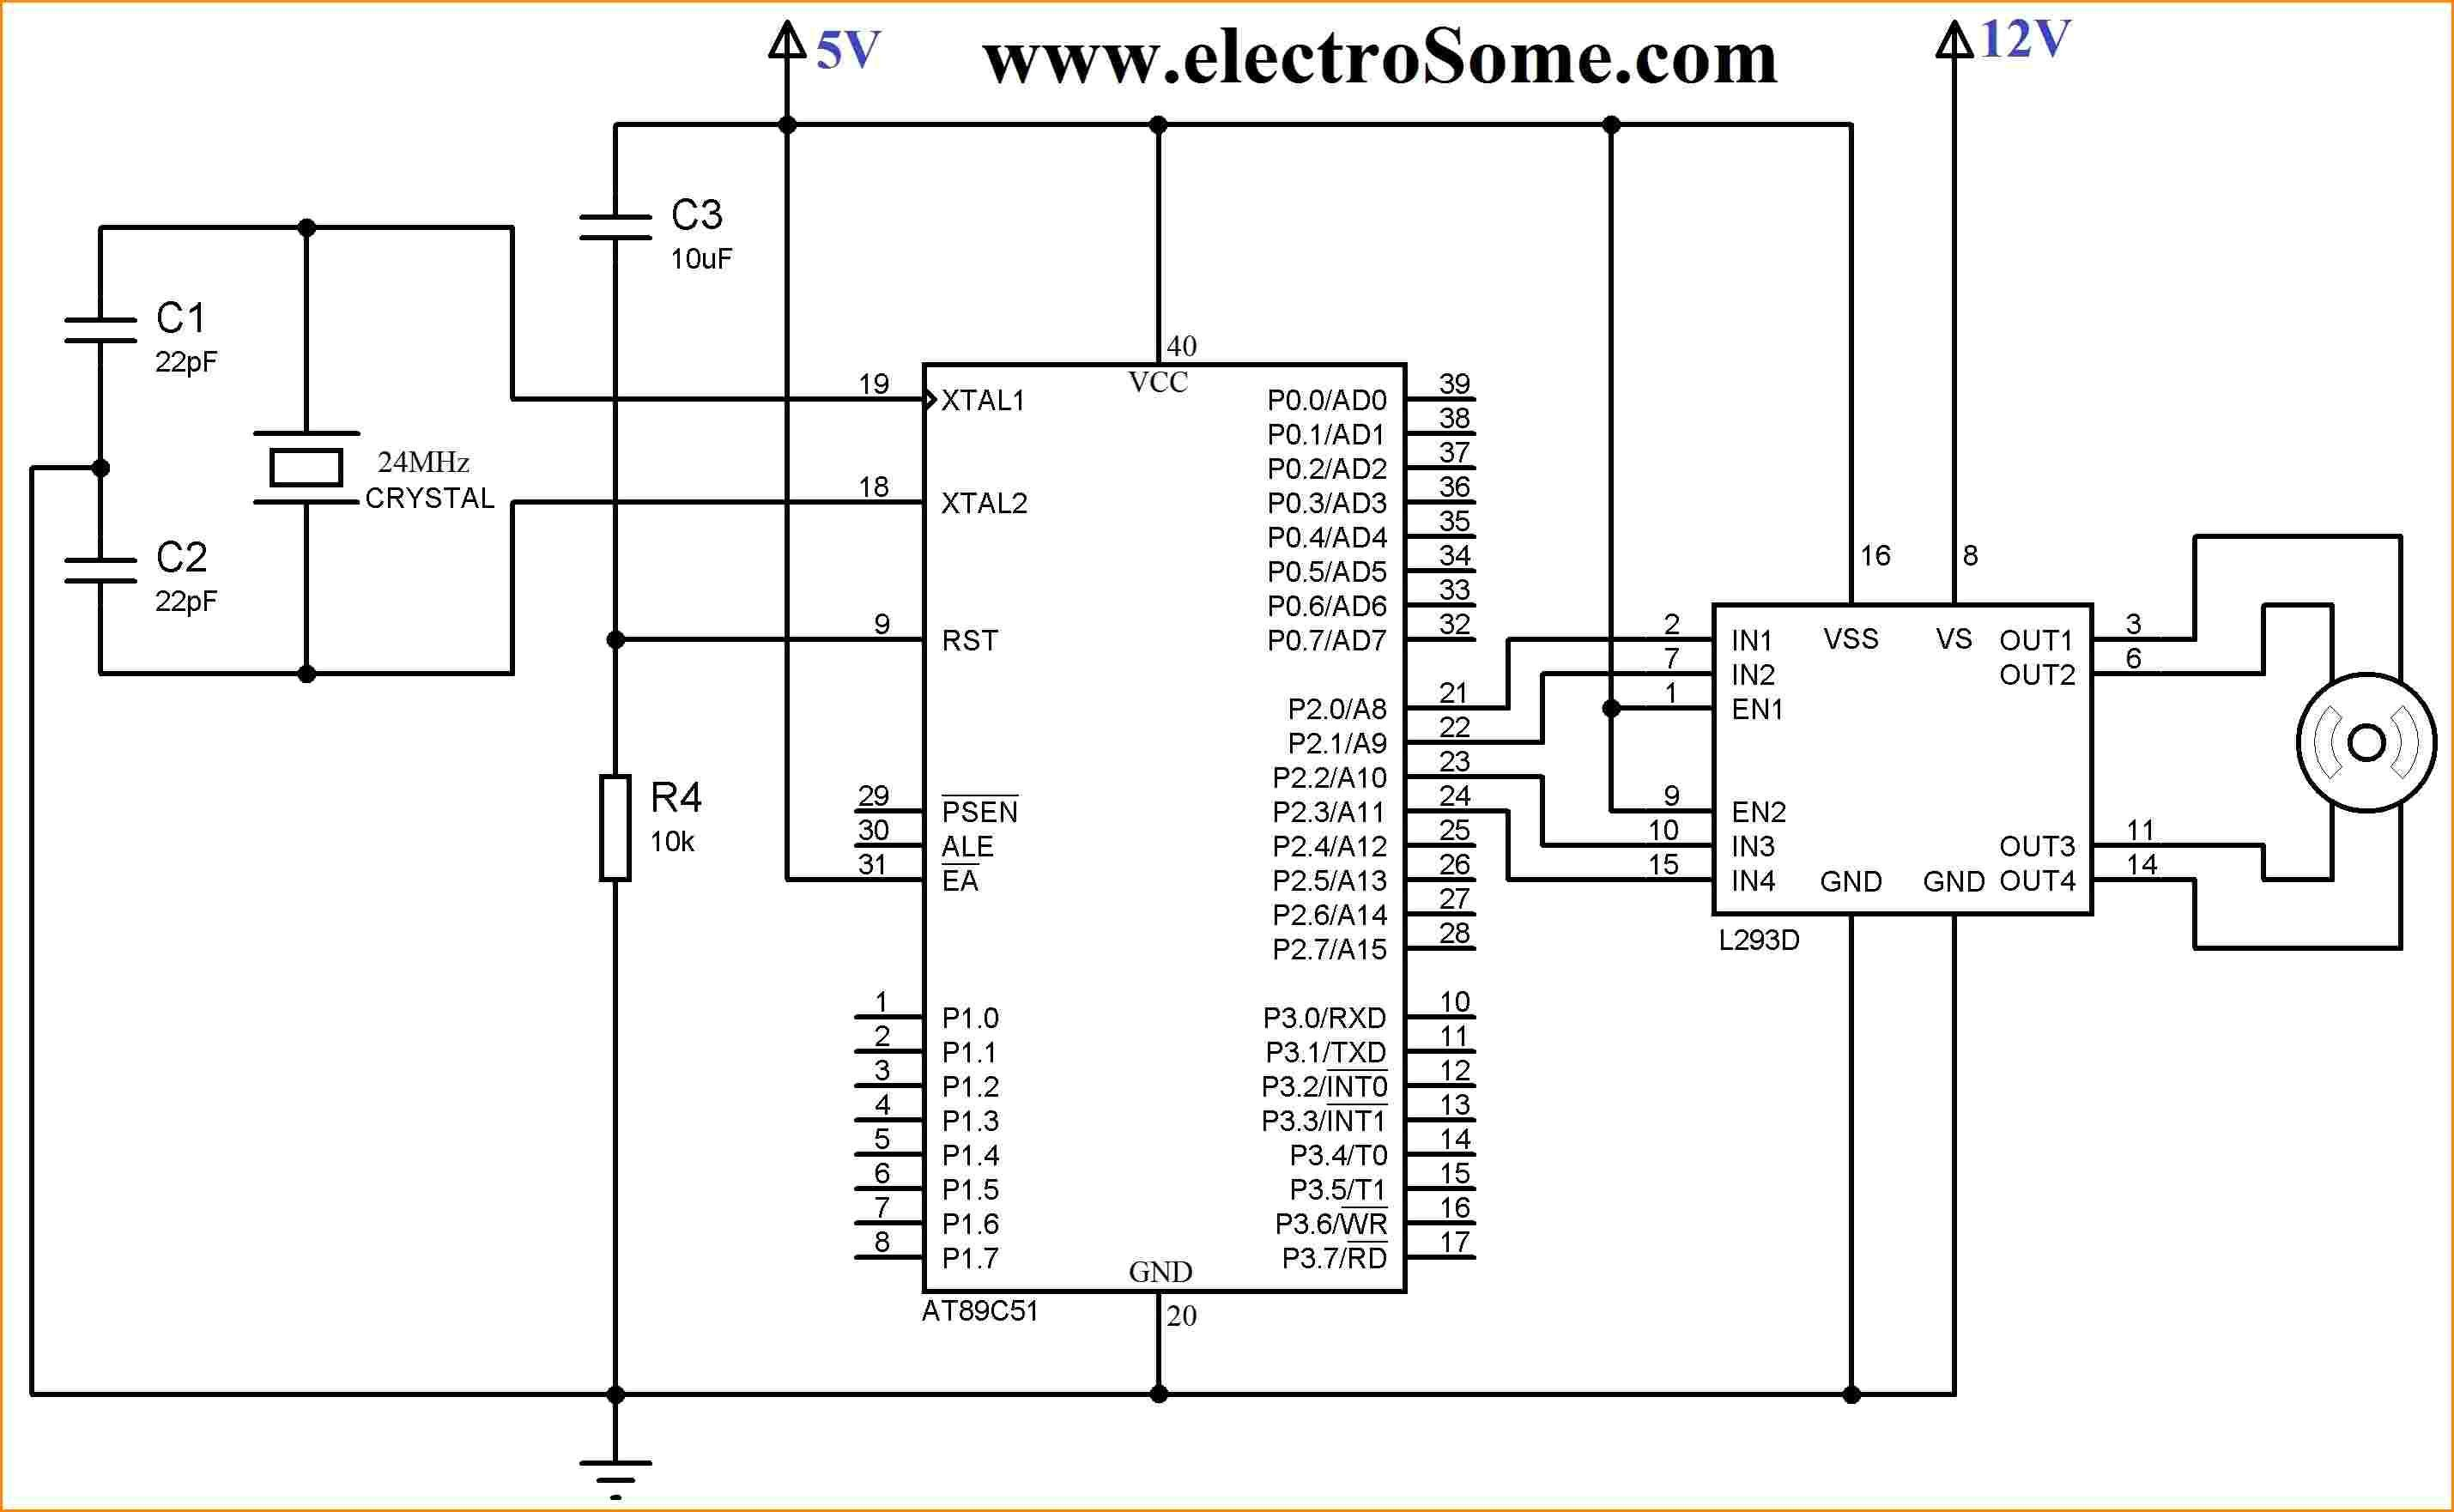 Security Camera Wiring Diagram Rj11. Security Camera Wiring Diagram Rj11. Wiring. Rj45 Wiring Diagram Cat5 At Justdesktopwallpapers.com